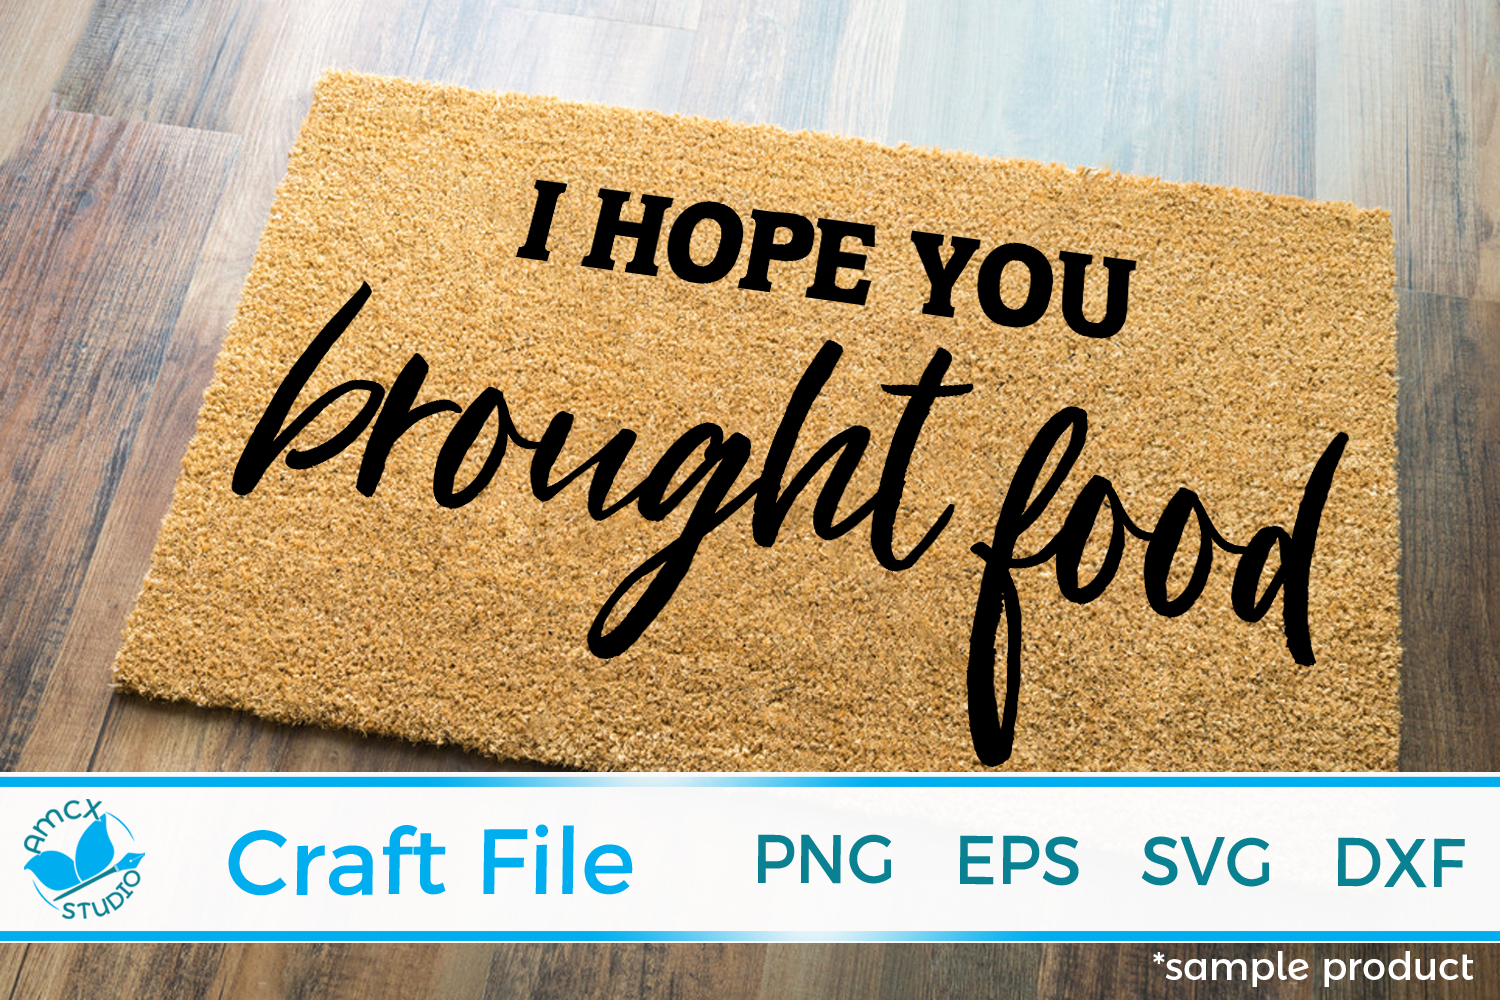 I hope you brought food Front Doormat SVG example image 1